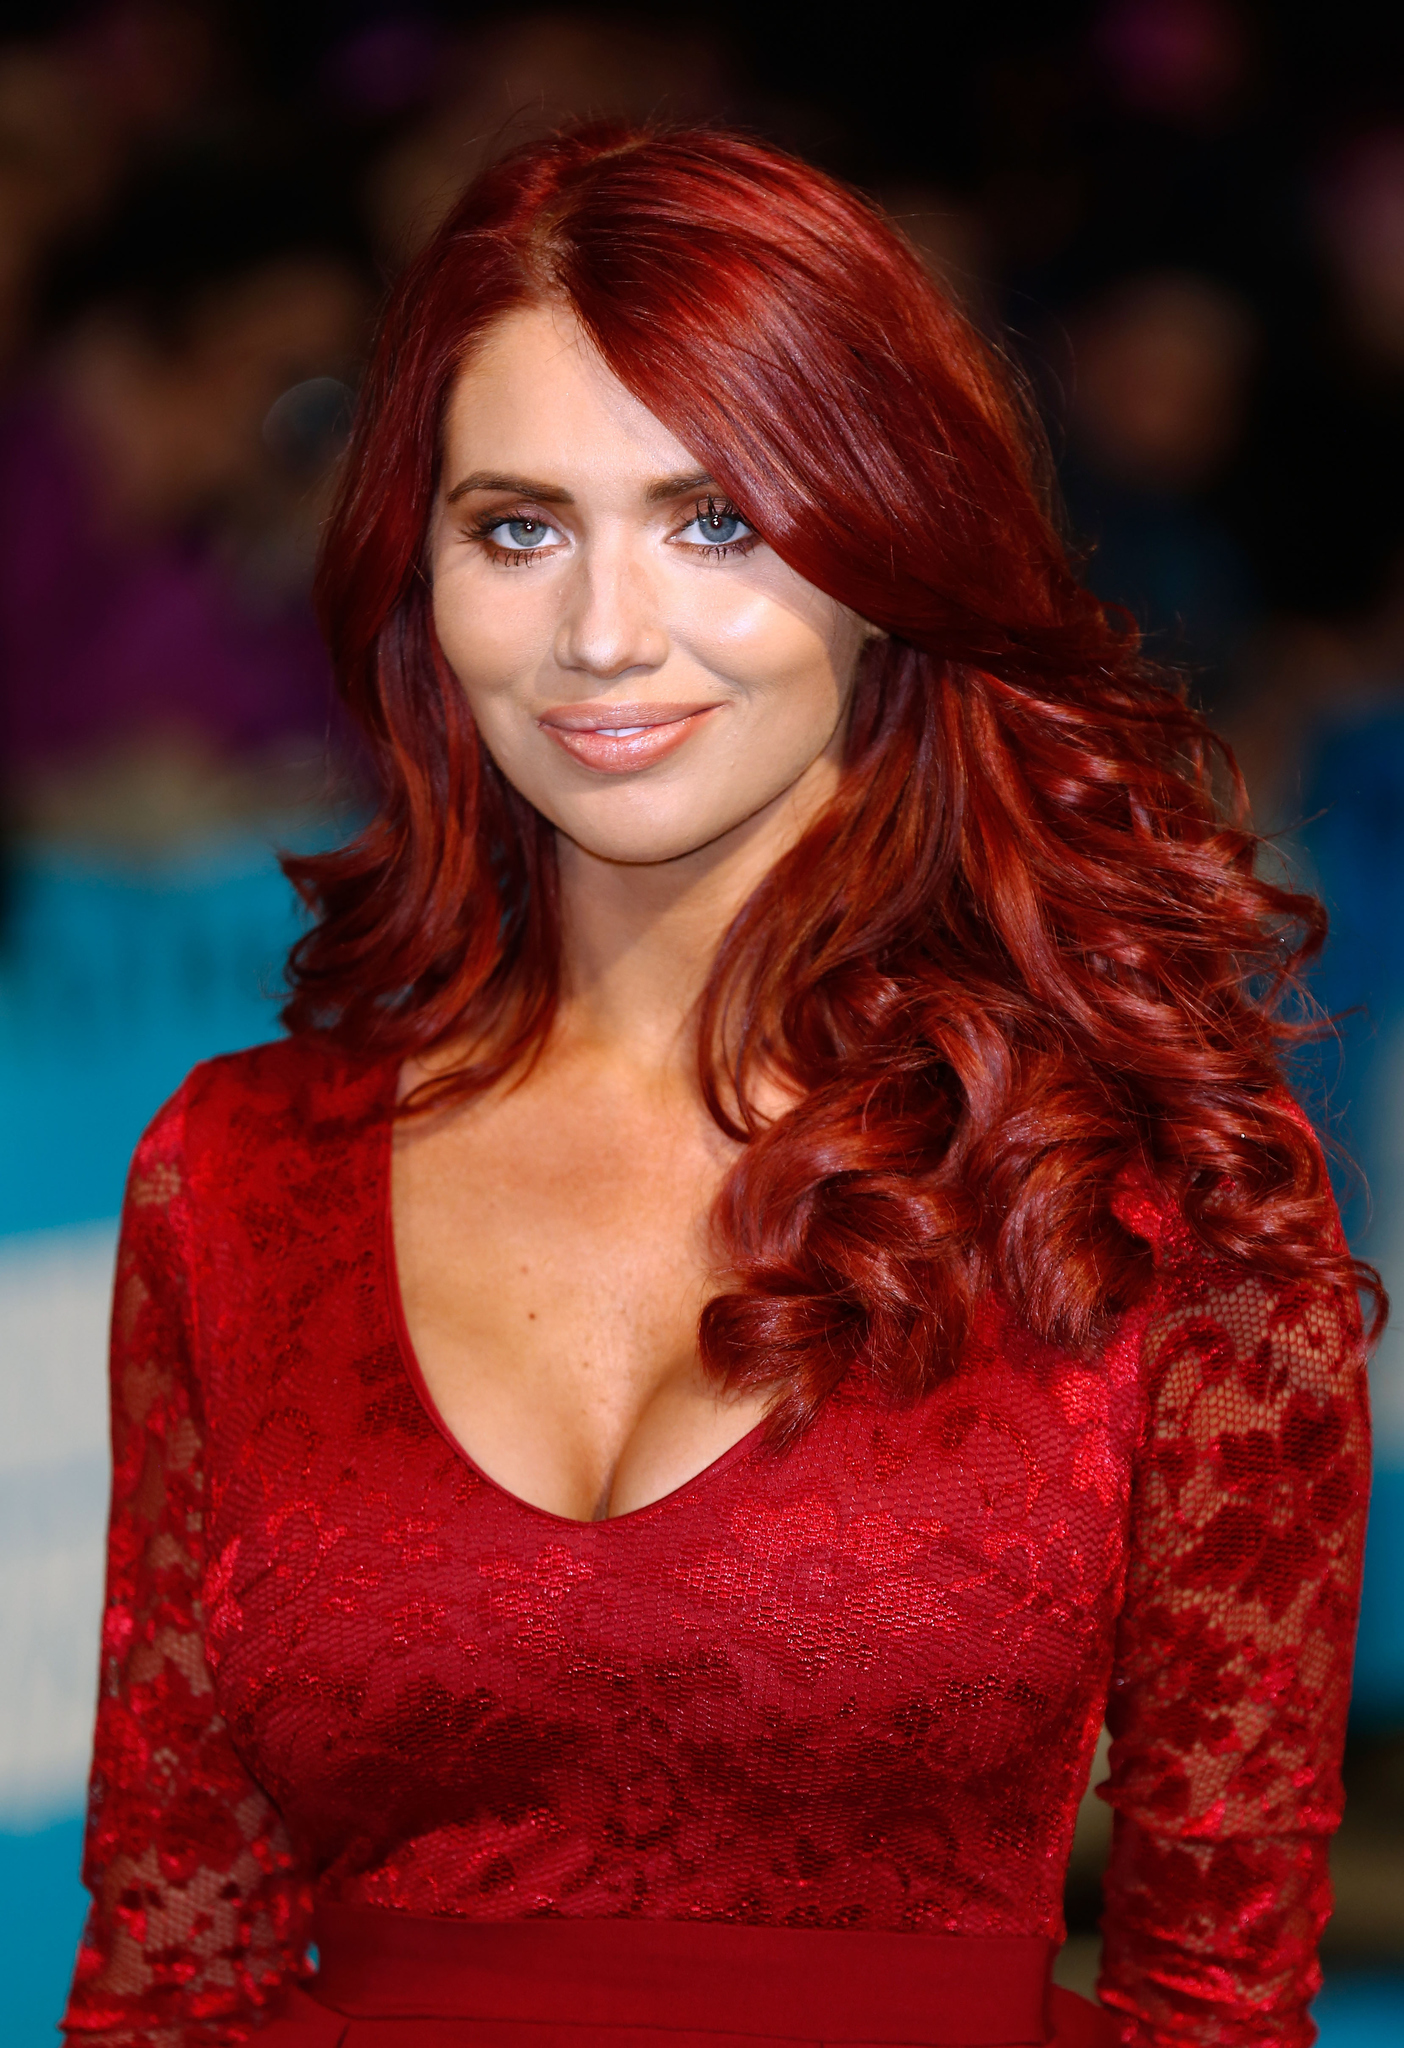 Pictures Amy Childs nude photos 2019